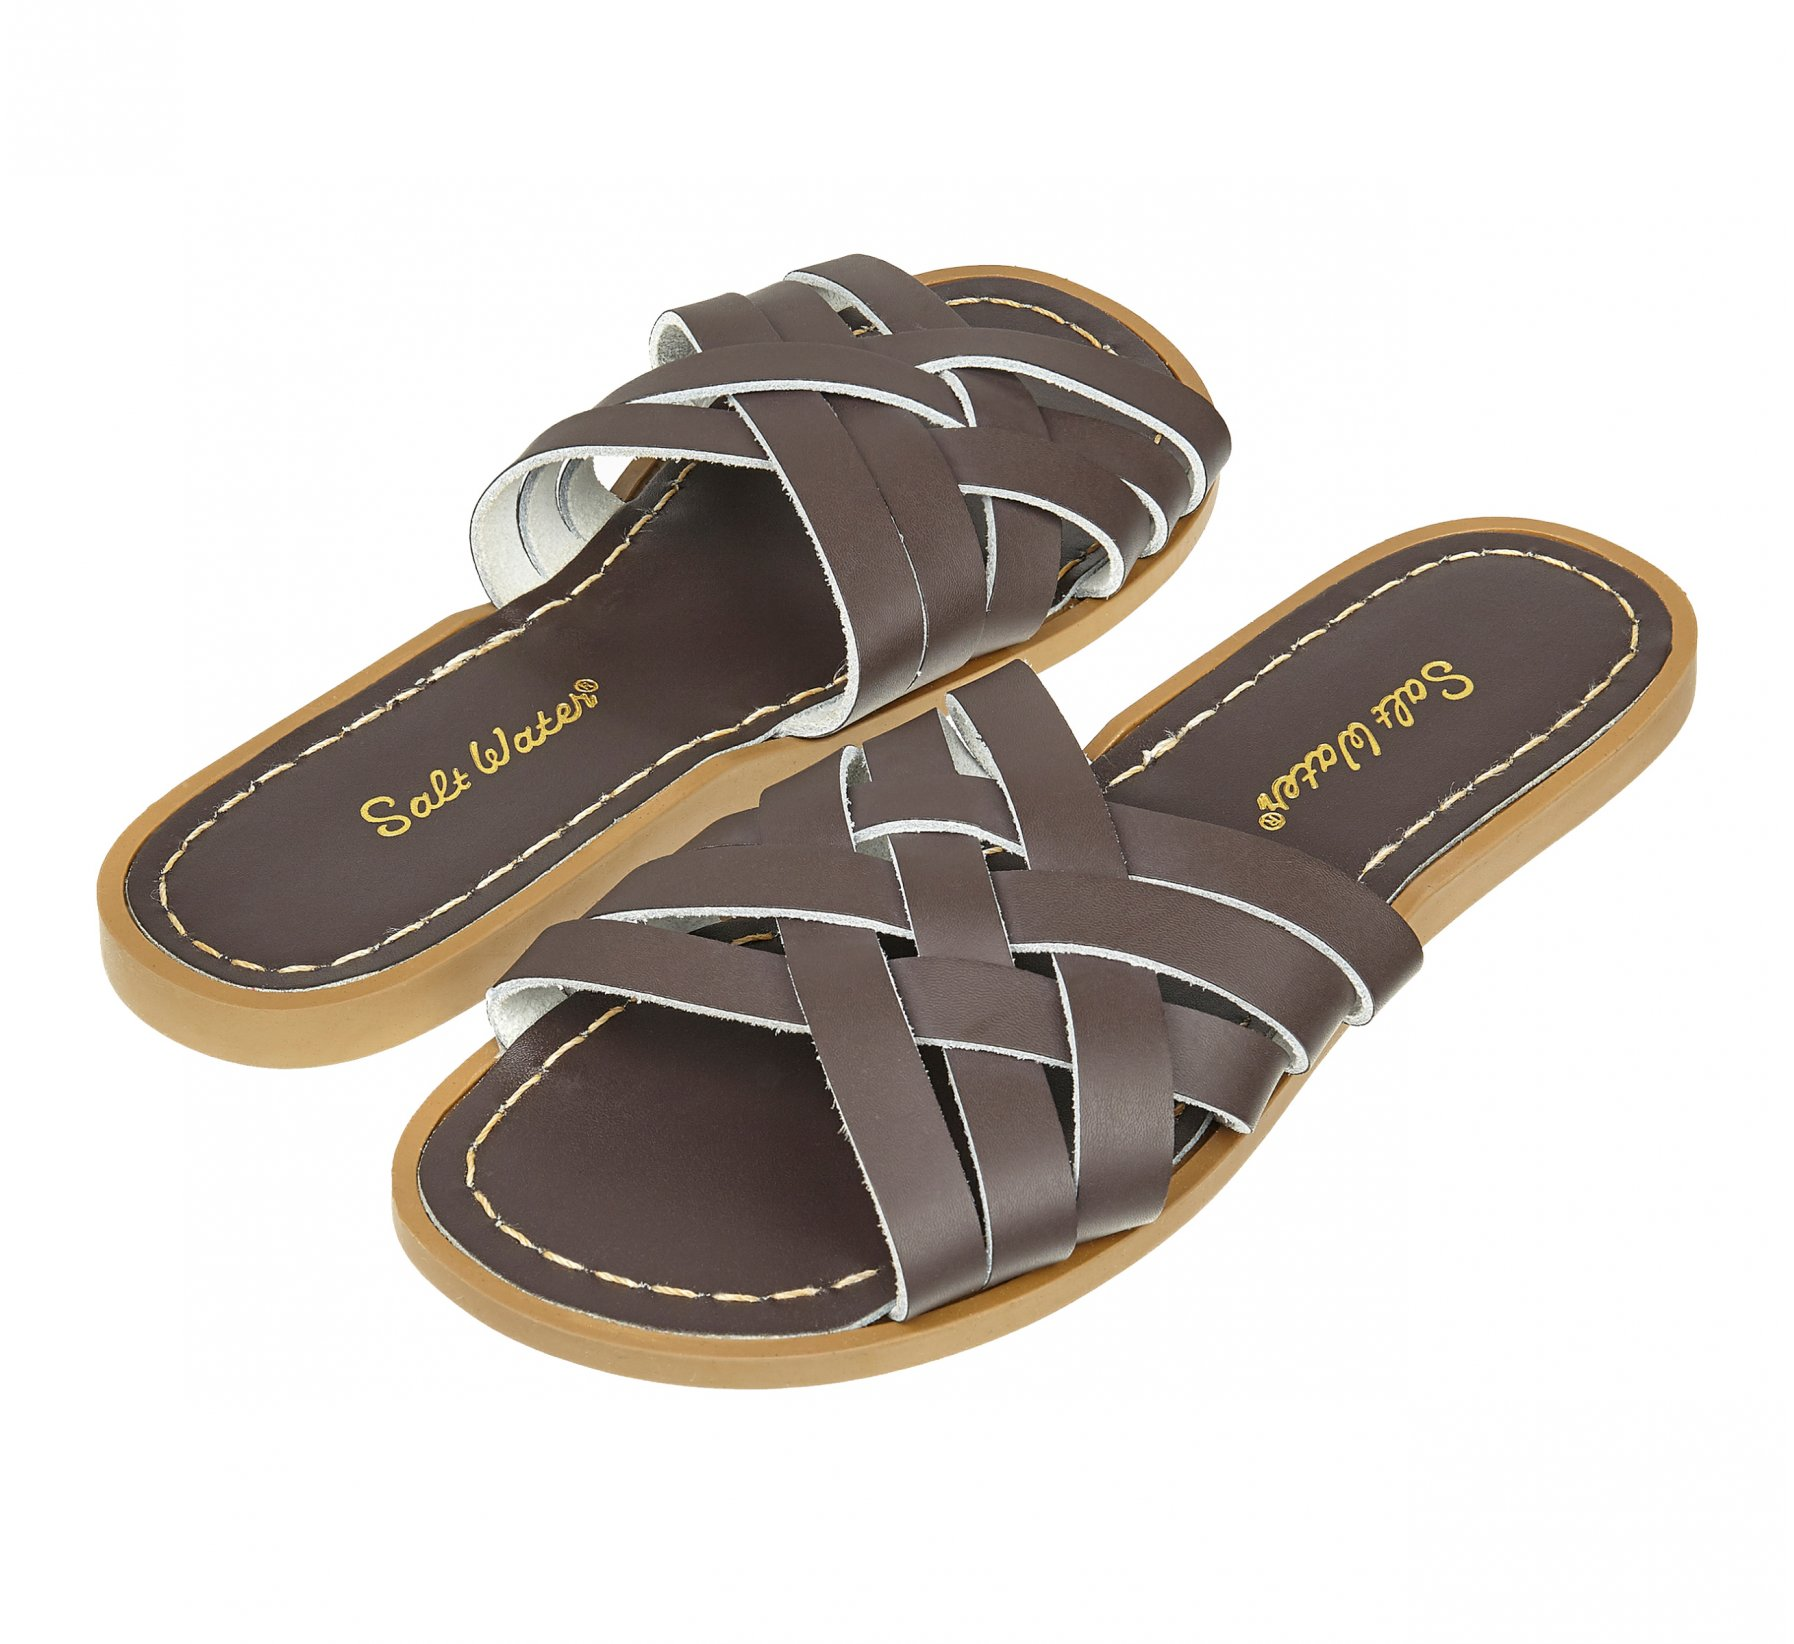 Retro Slide Brown - Salt Water Sandals